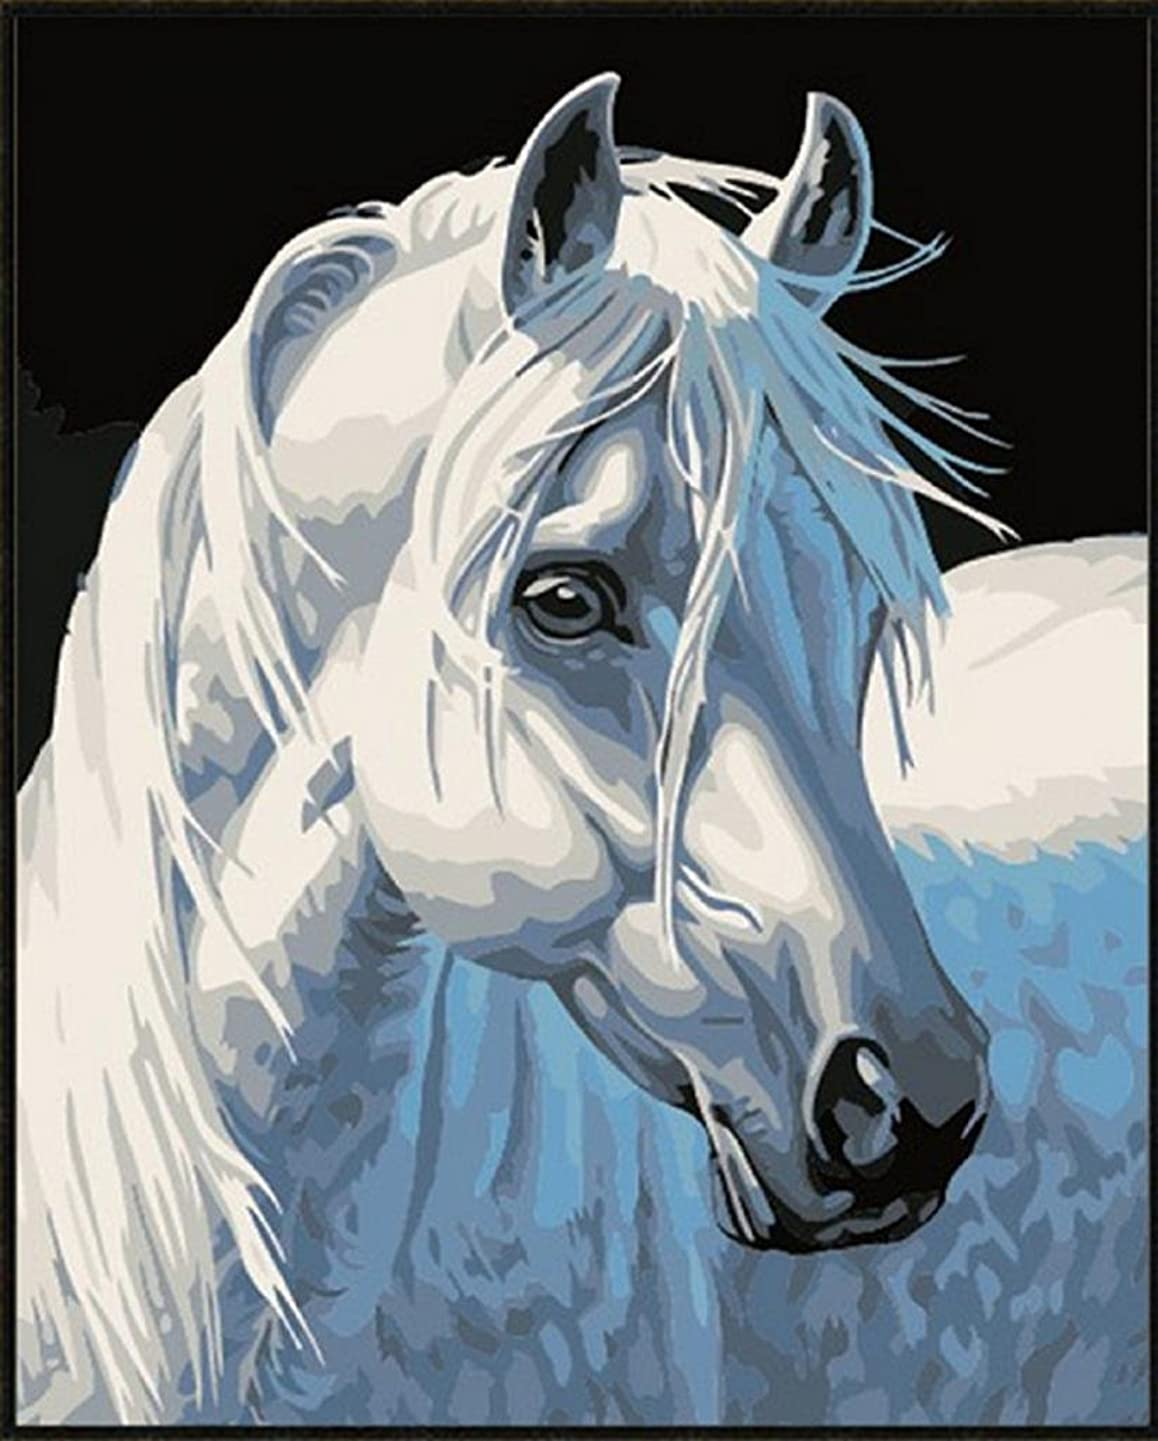 Colour Talk Diy oil painting, paint by number kit- White horse 1620 inch.